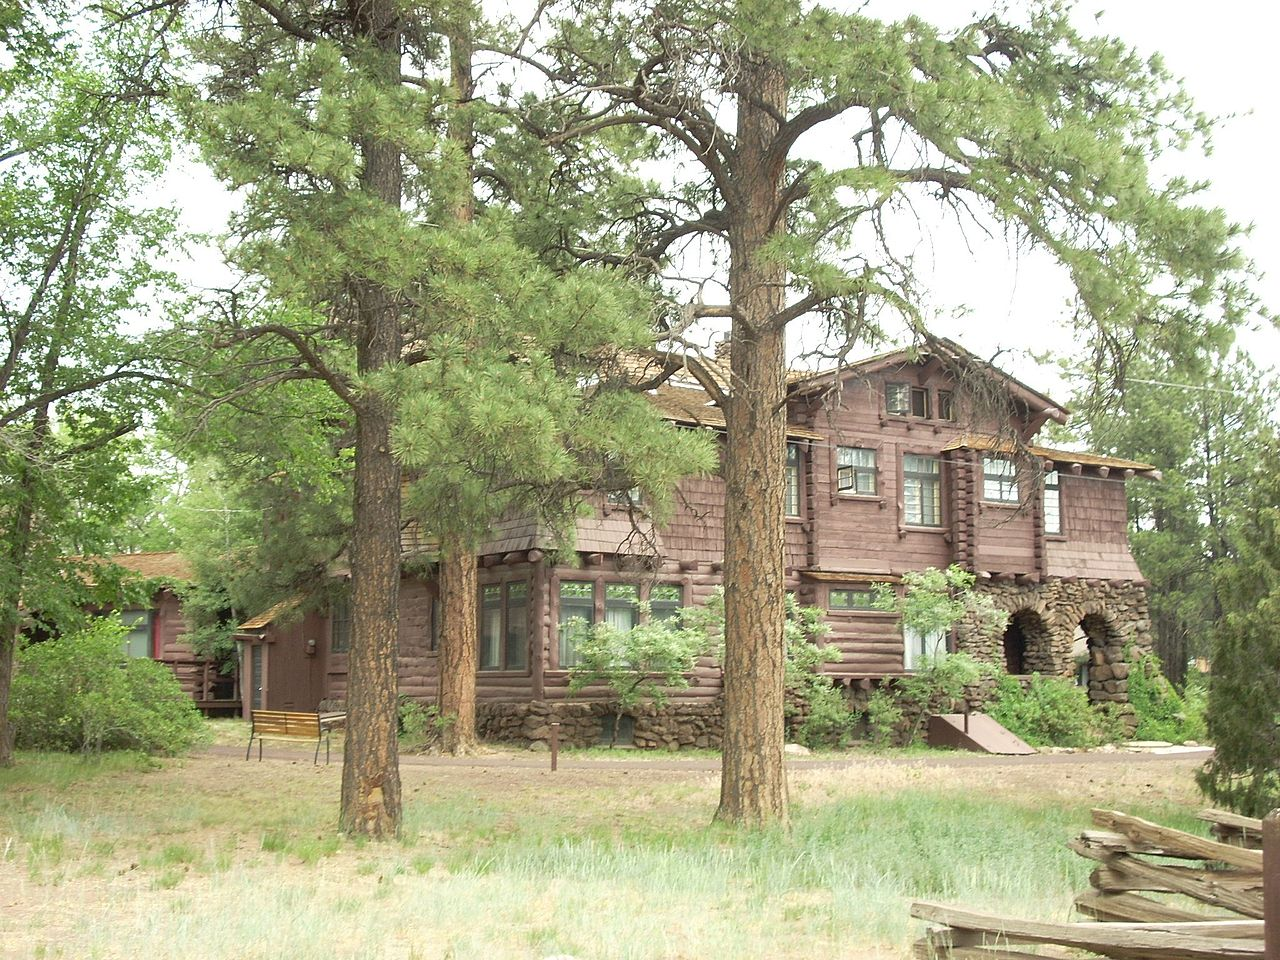 Popular Place To Visit In Flagstaff-Riordan Mansion State Historic Park